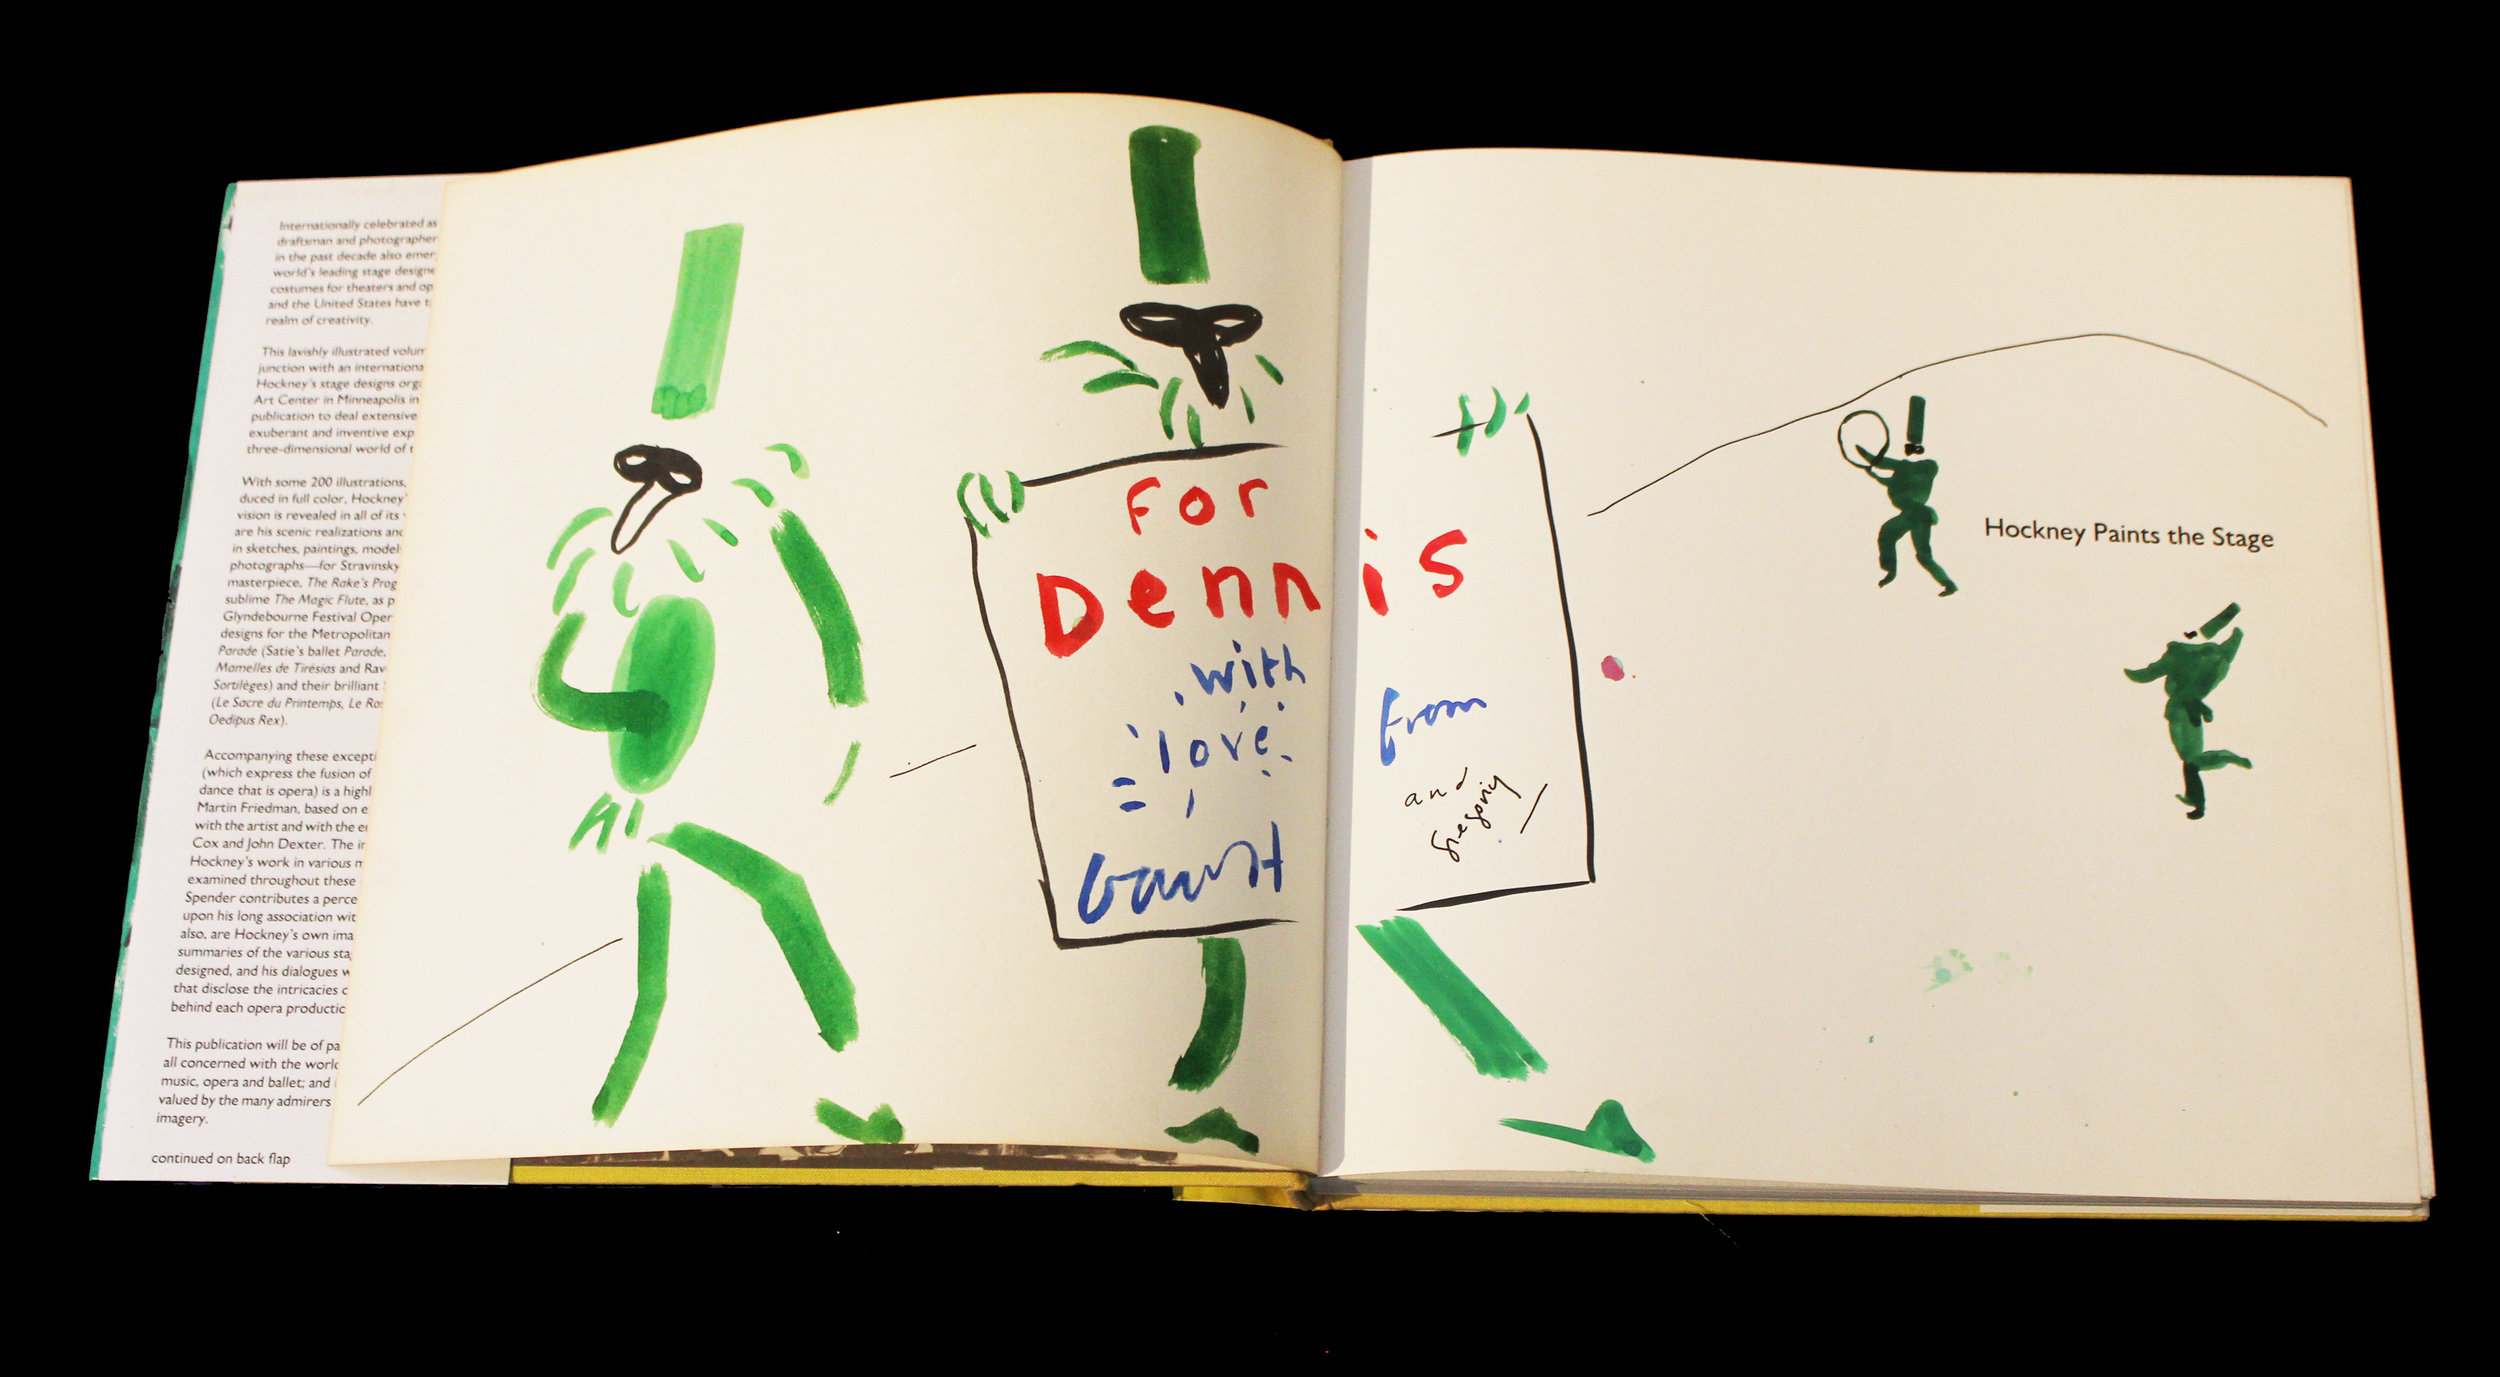 """David Hockney    Hockney Paints the Stage , 1983 Unique pen and ink hand drawing in colors by David Hockney on left and right title pages within hardback monograph """"Hockney Paints the Stage"""" Signed by both David Hockney and Hockney's partner Gregory, dedicated """"For Dennis"""" Drawing: 10 x 12 inches; Book: 10.5 x 10.5 inches Provenance: Gifted to Dennis Purcell from the Artist, from thence gifted to present owner Estimate: $3,000/$4,000"""